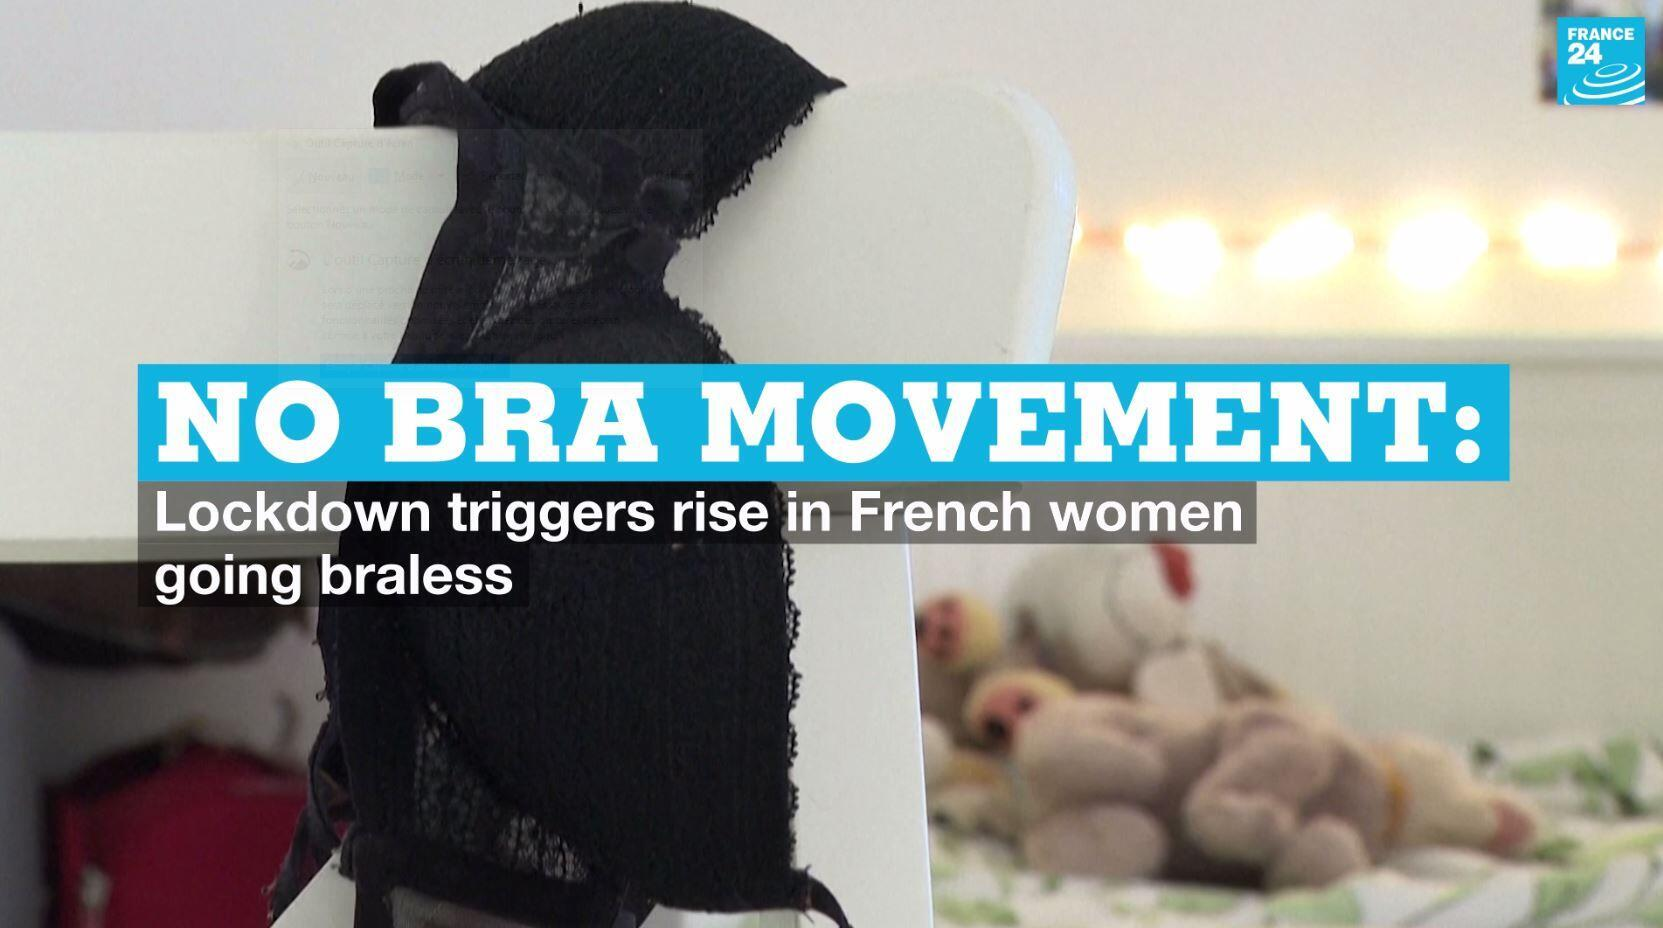 A recent survey has found that a growing number of French women are choosing not to wear bras.